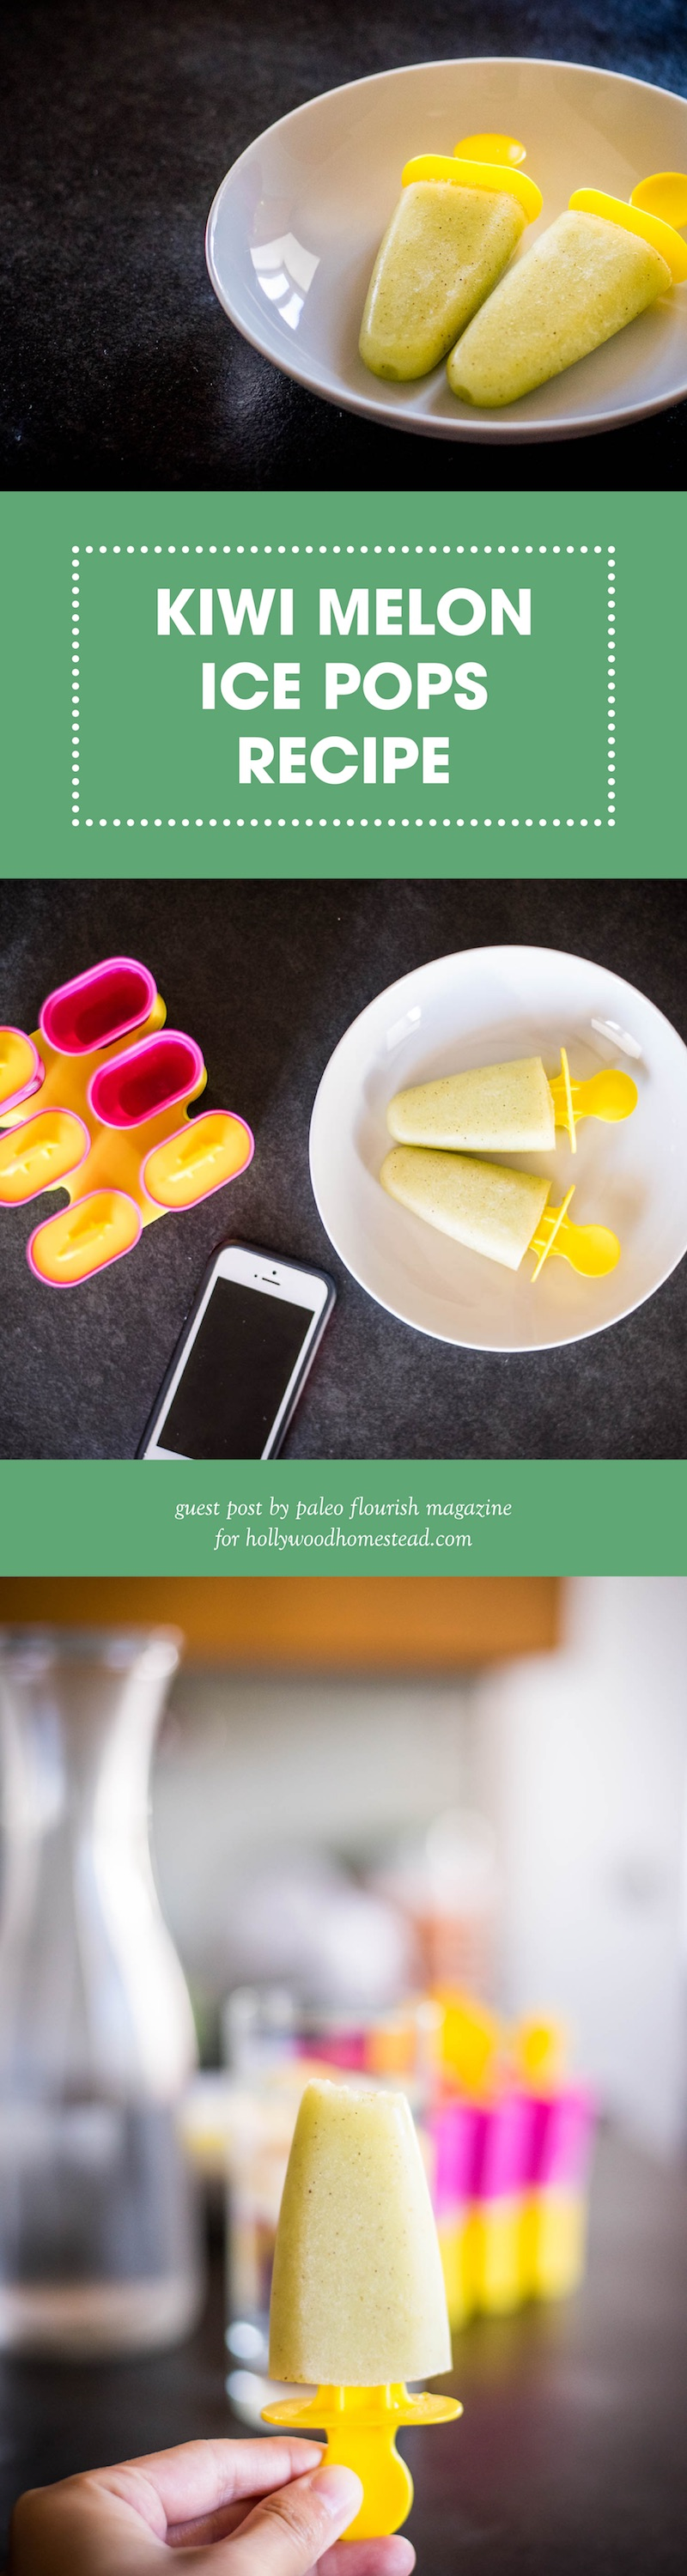 Kiwi Melon Ice Pops Recipe Paleo AIP